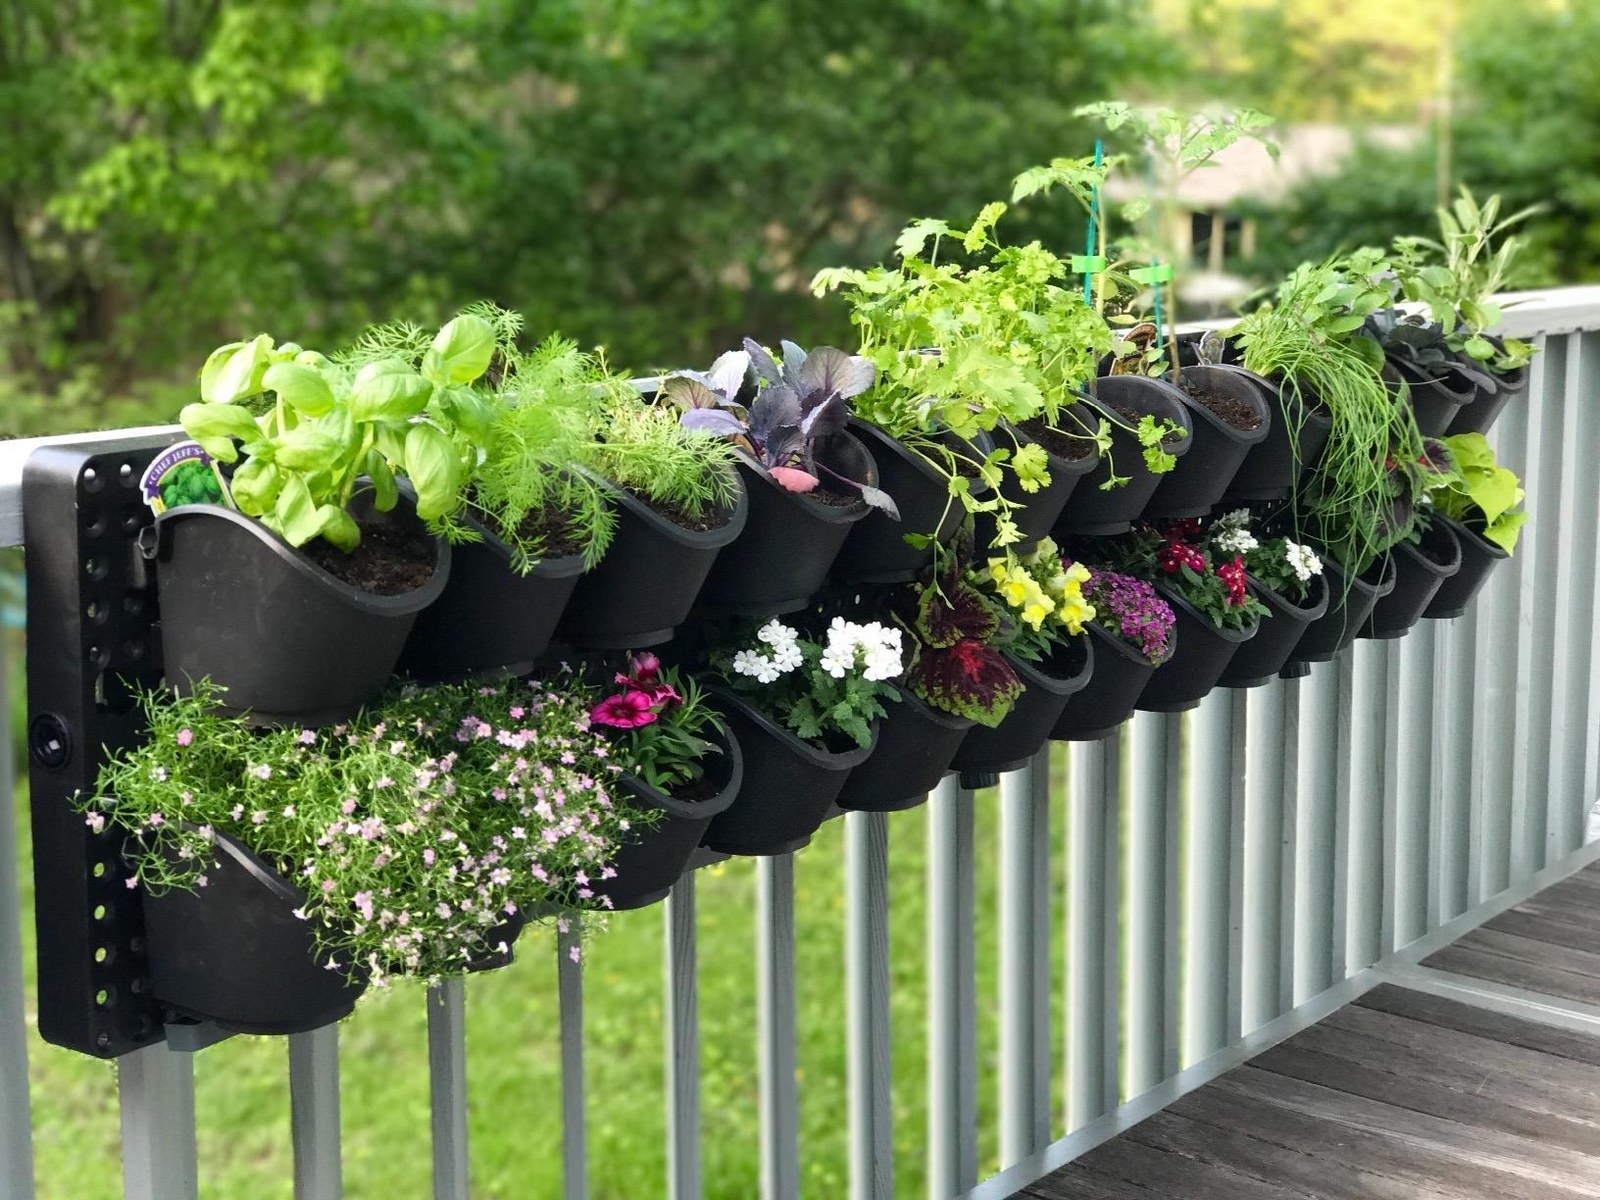 Two lines of about 15 plant pots on one long rectangle that's attached to a rail on an outdoor porch